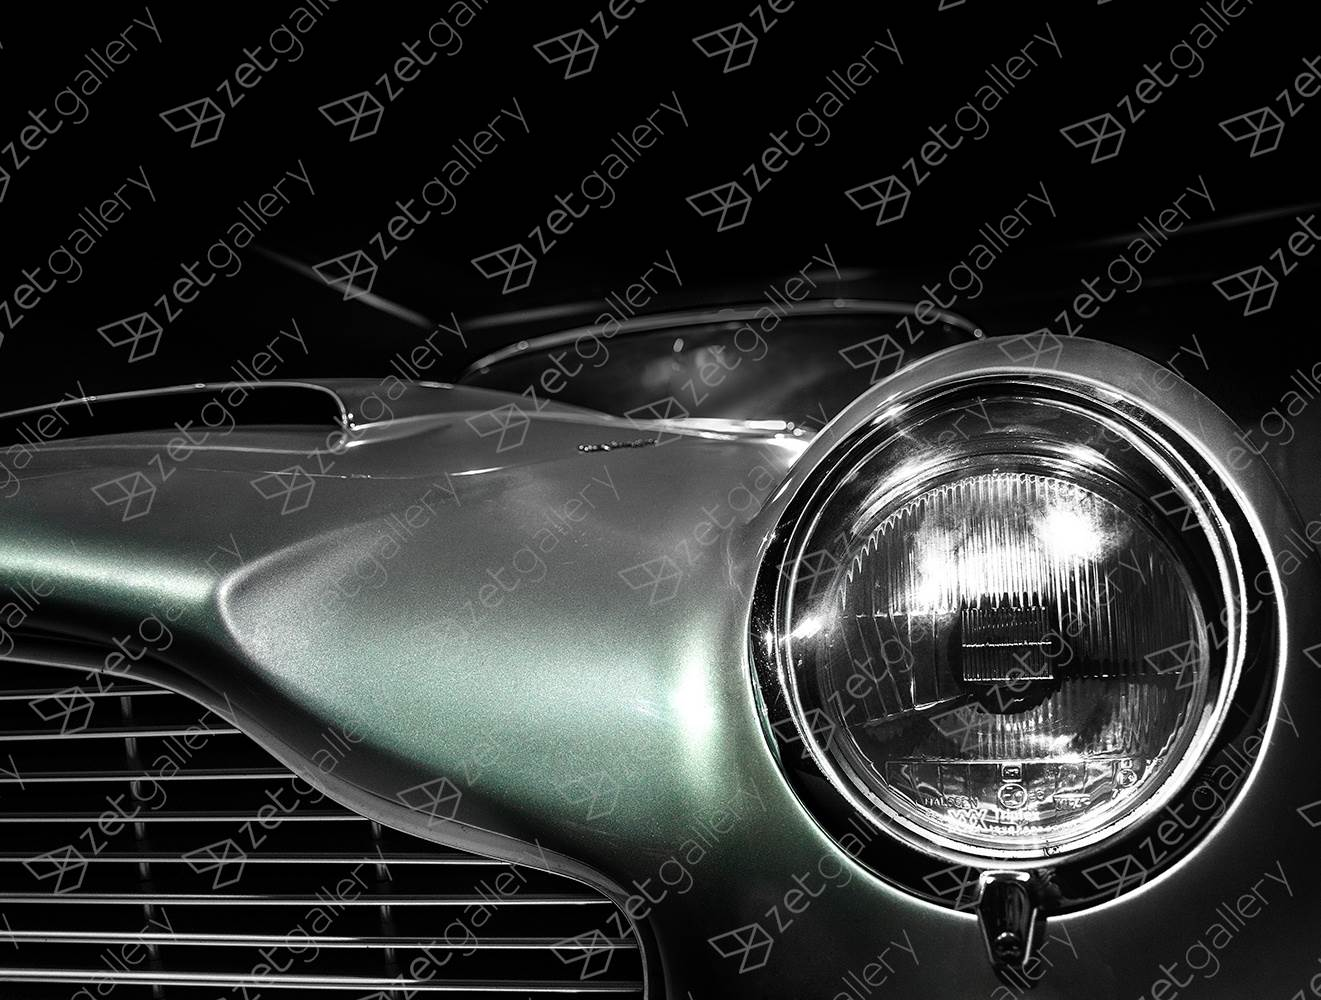 Aston Martin DB6 01, original Avant-Garde Digital Photography by Yggdrasil Art